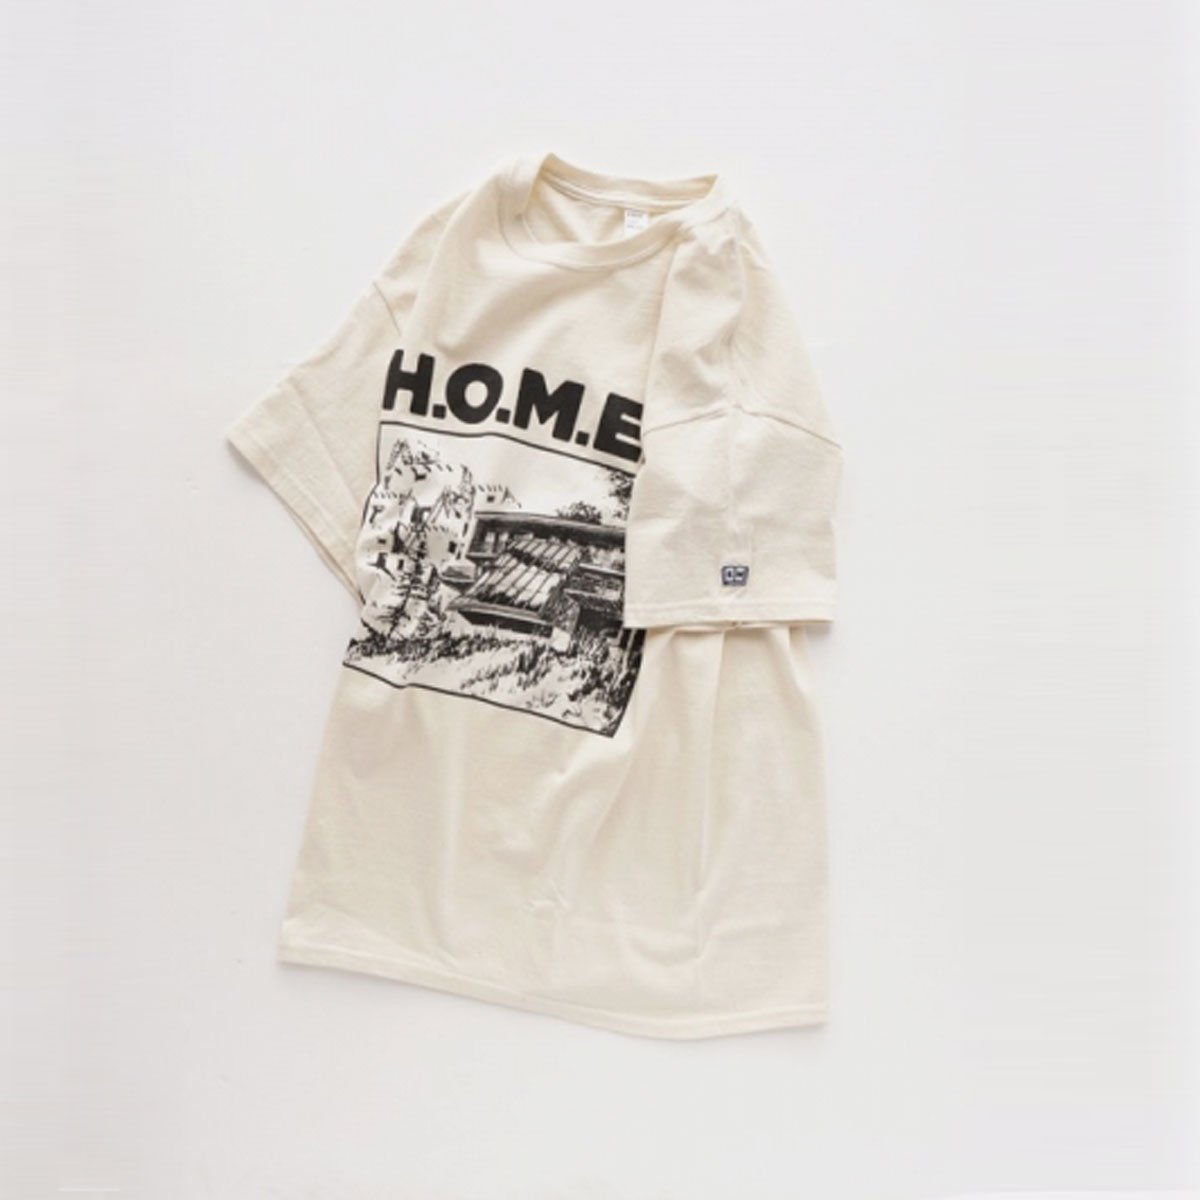 ENDS & MEANS H.O.M.E. S TEE  (NATURAL)2